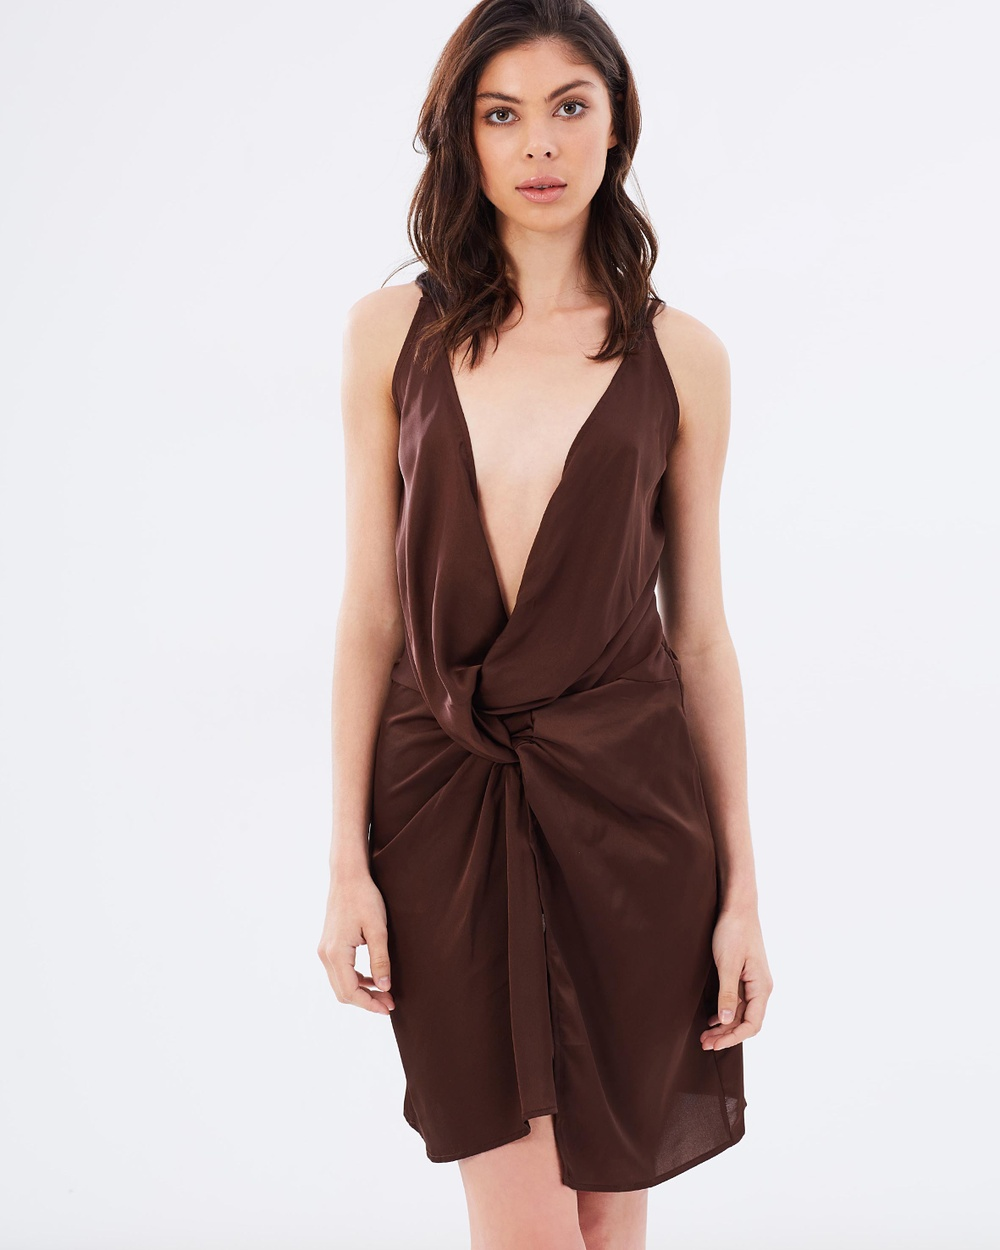 Lioness In Your Dreams Silky Dress Dresses Deep Brown In Your Dreams Silky Dress